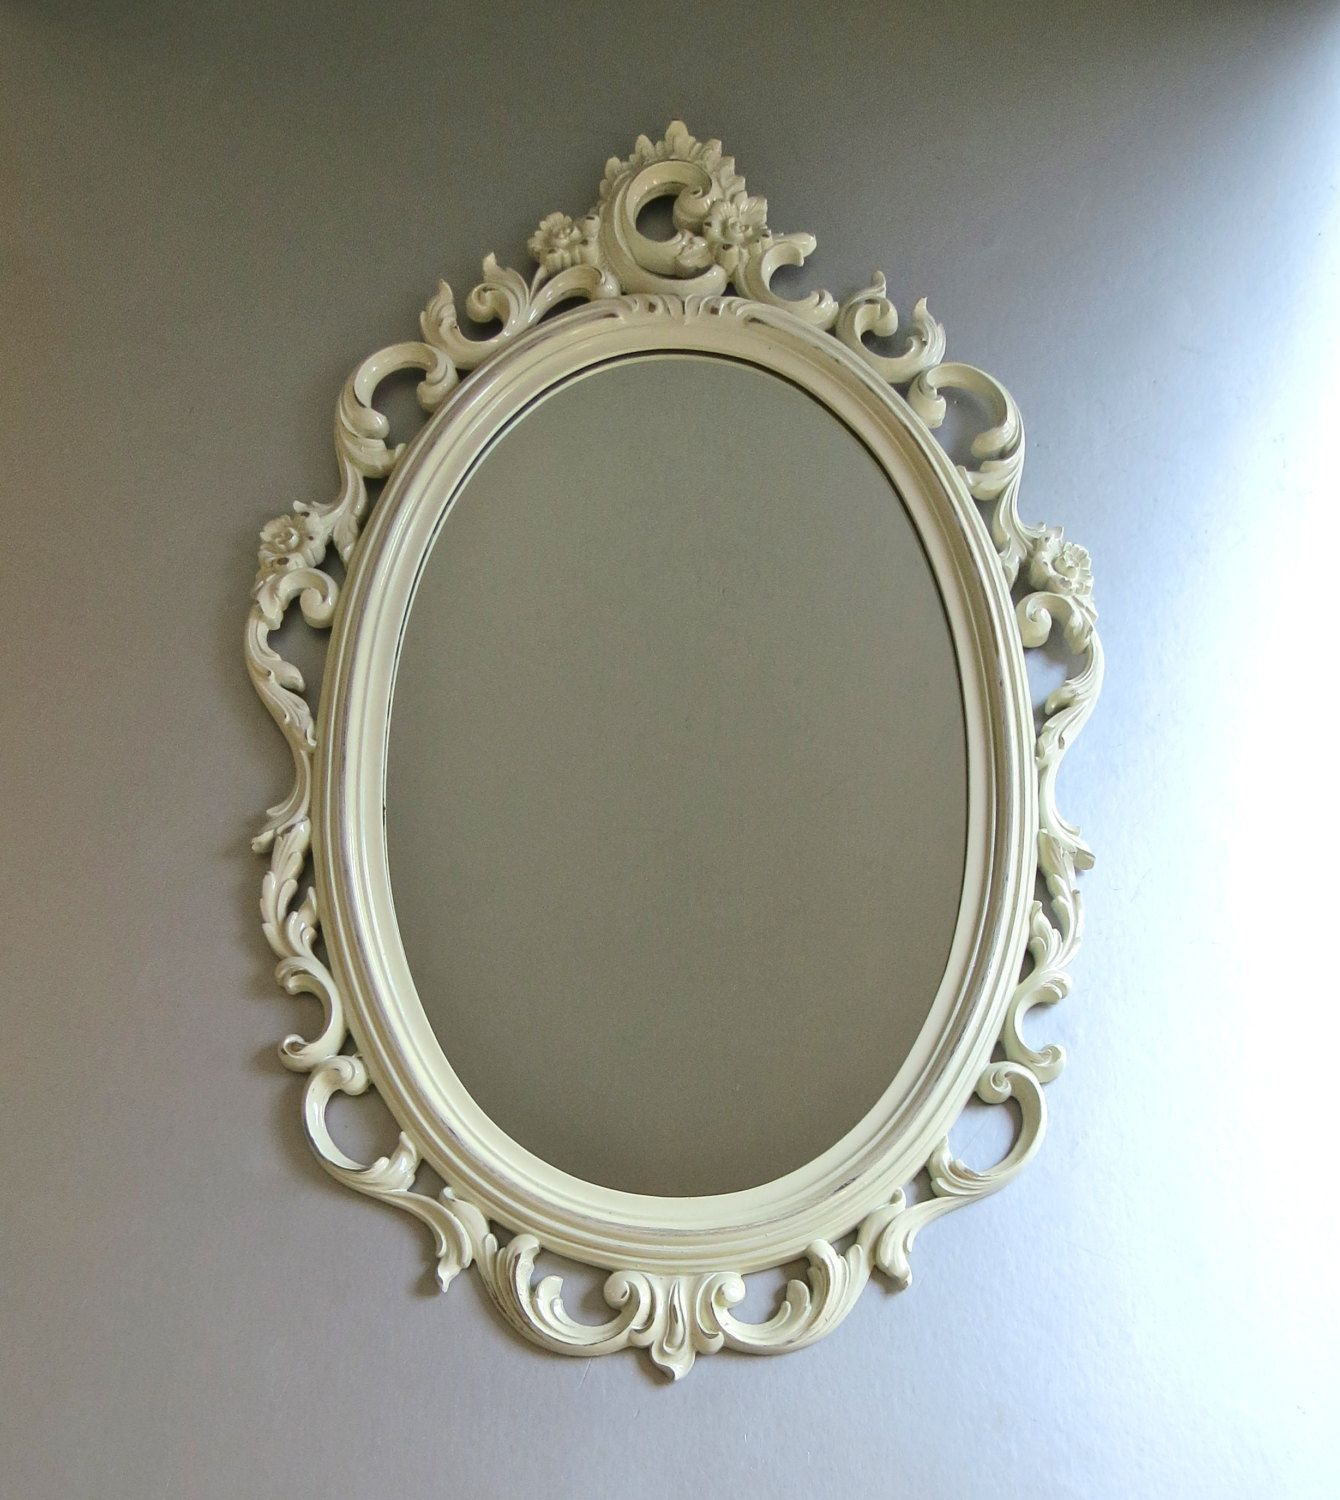 Vintage Syroco Mirror White Mirror Ornate Mirror Fancy Mirror Shabby And Chic Cottage Chic Hollywood Reg White Vintage Mirror Fancy Mirrors Etched Mirror